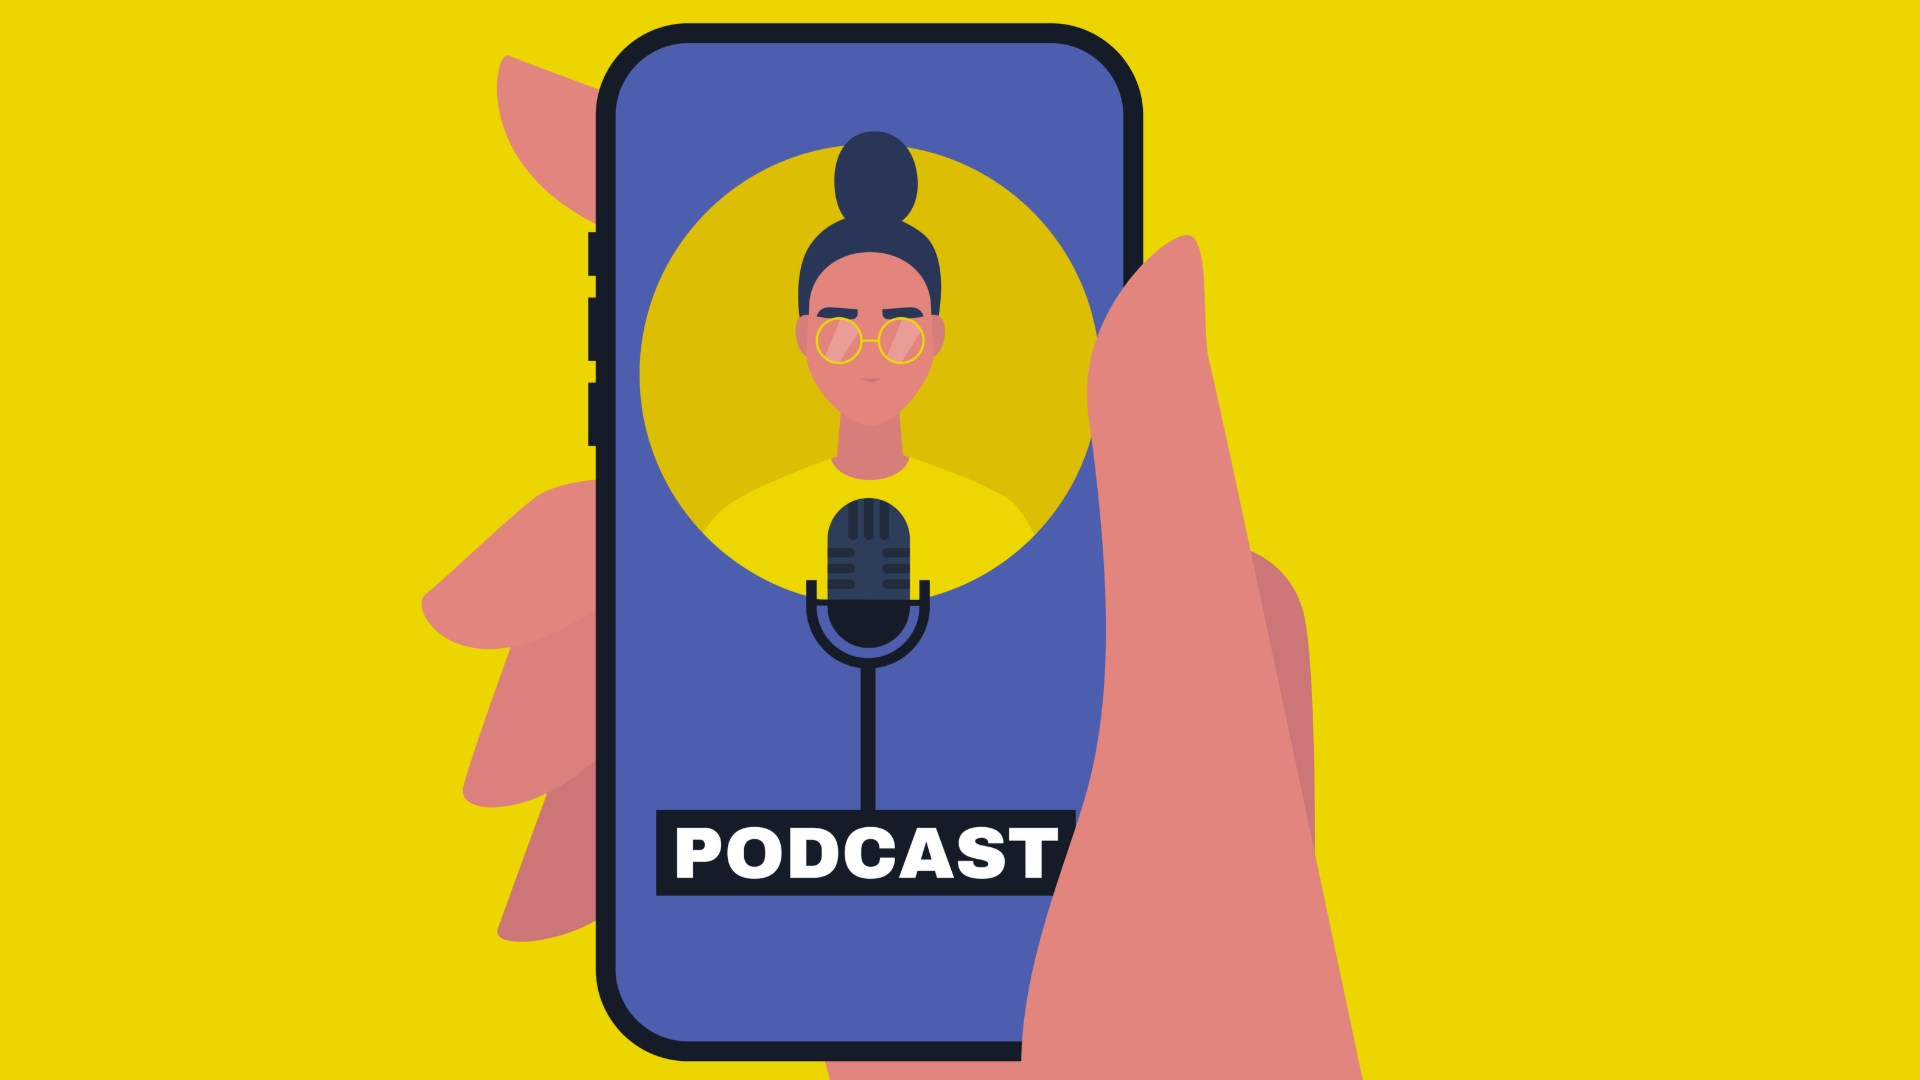 Top 10 podcasts for b2b marketing ideas and tips